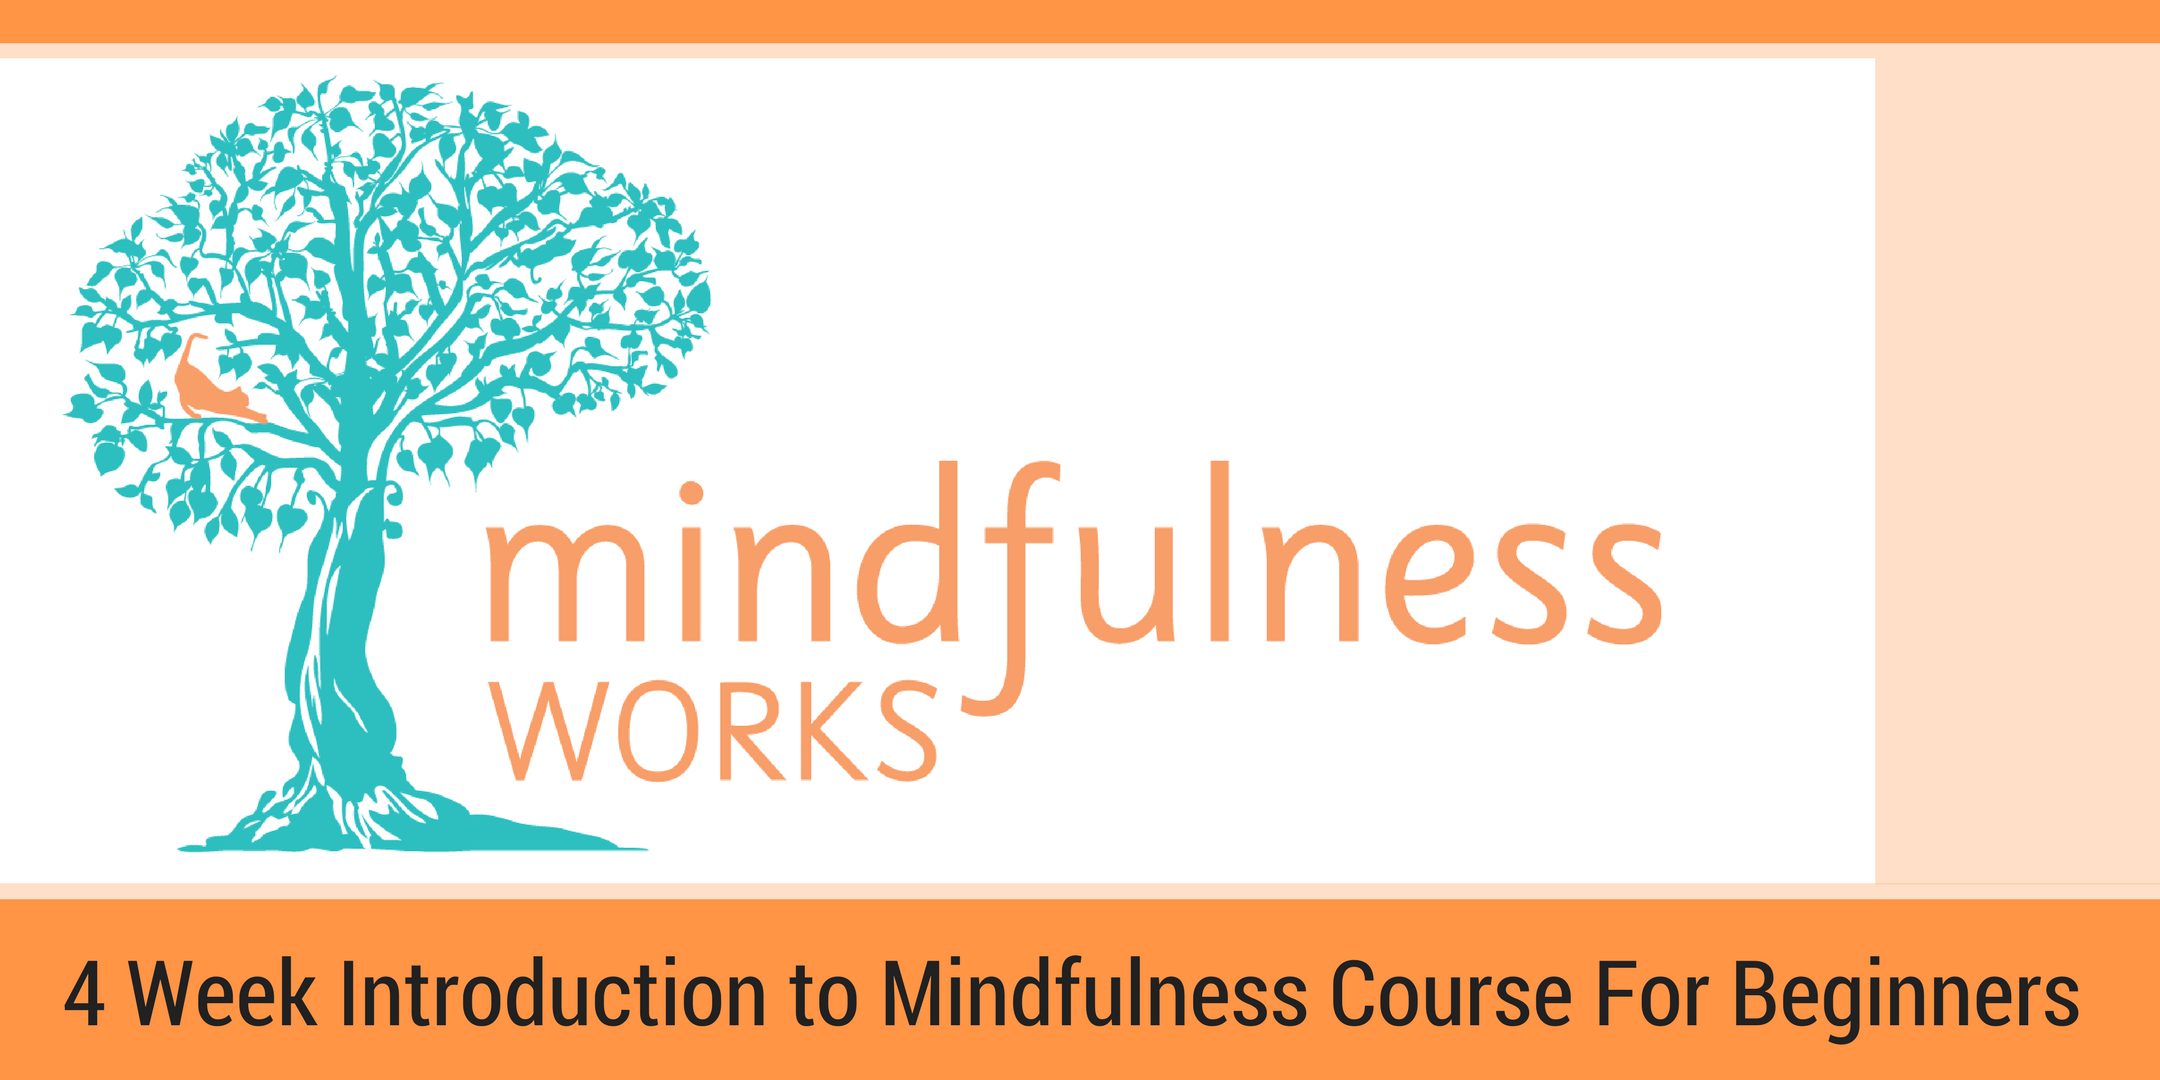 Canberra (Chifley) – An Introduction to Mindfulness & Meditation 4 Week Course